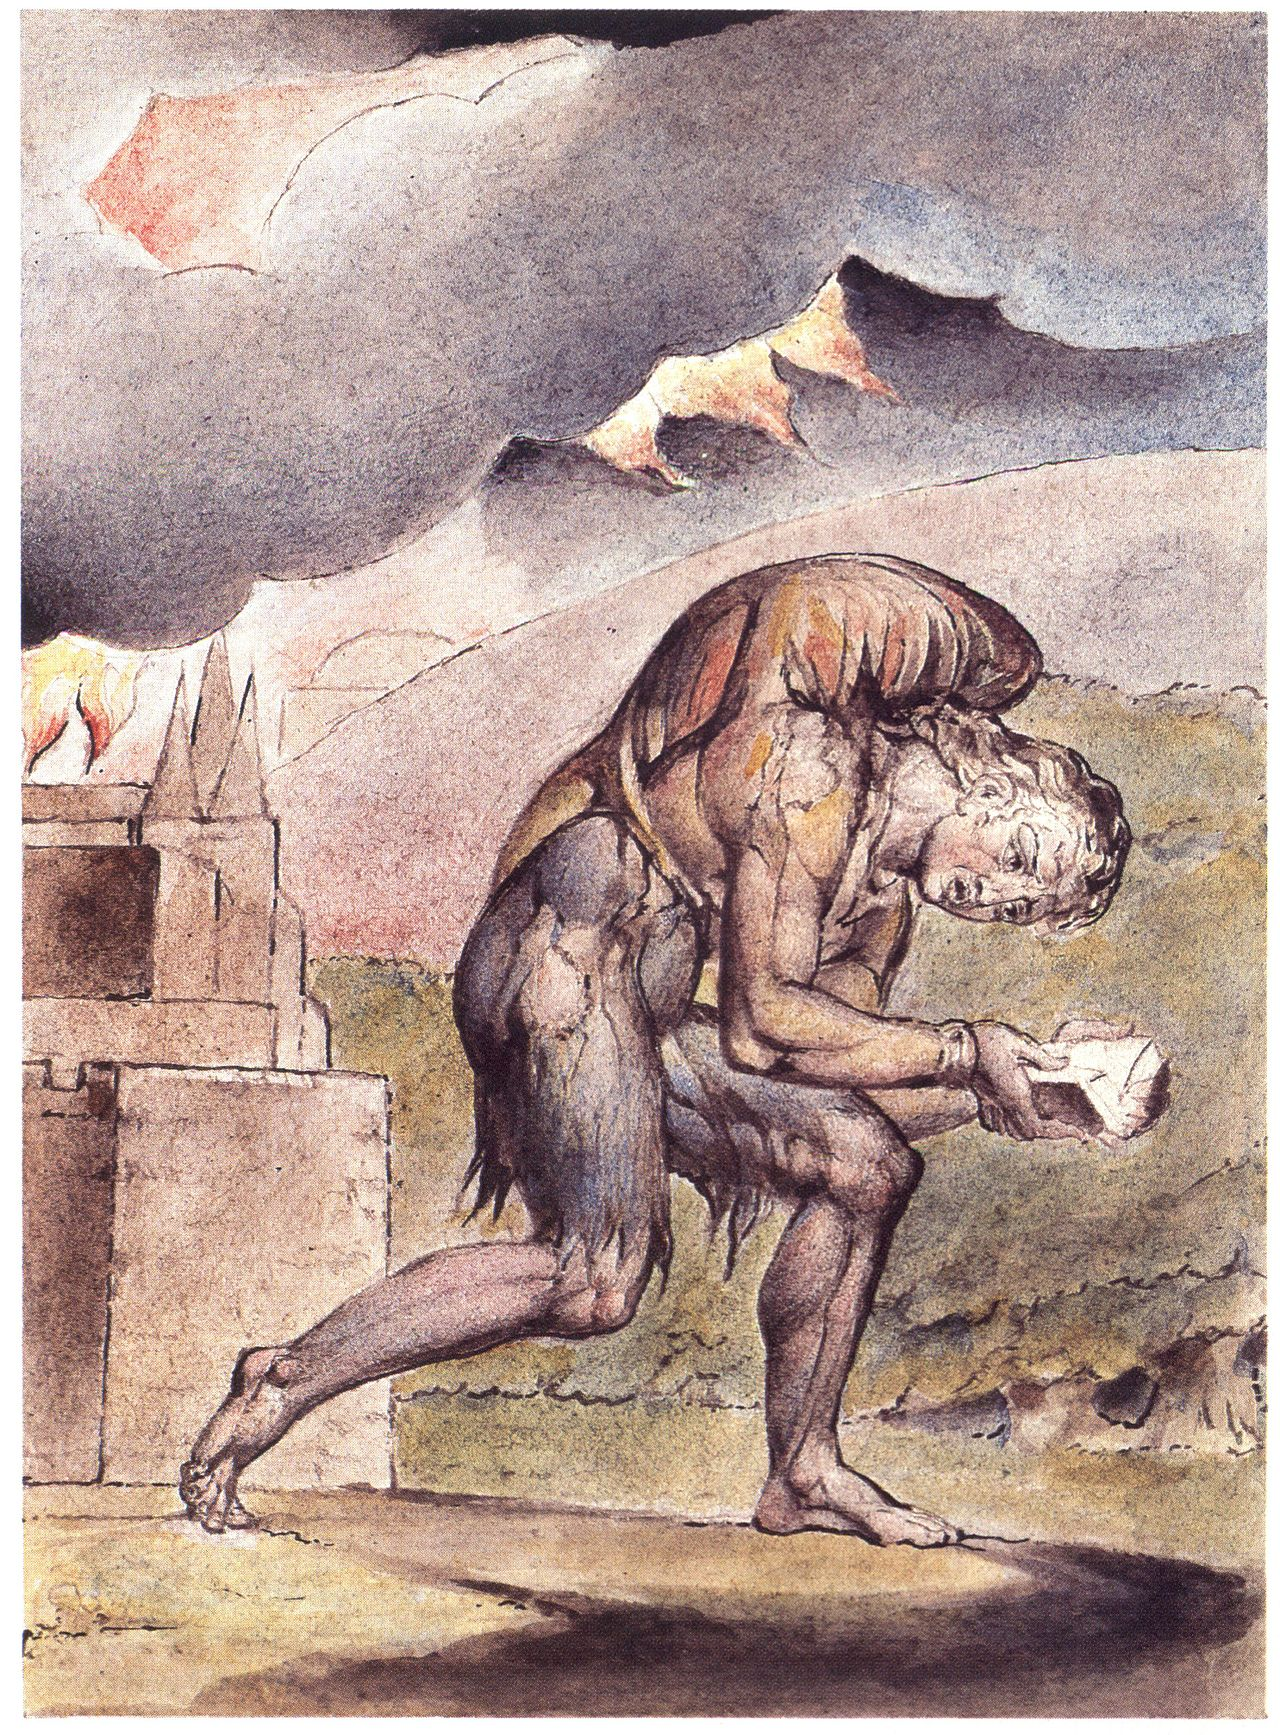 William_Blake_-_John_Bunyan_-_Cristian_Reading_in_His_Book_-_Frick_Collection_New_York